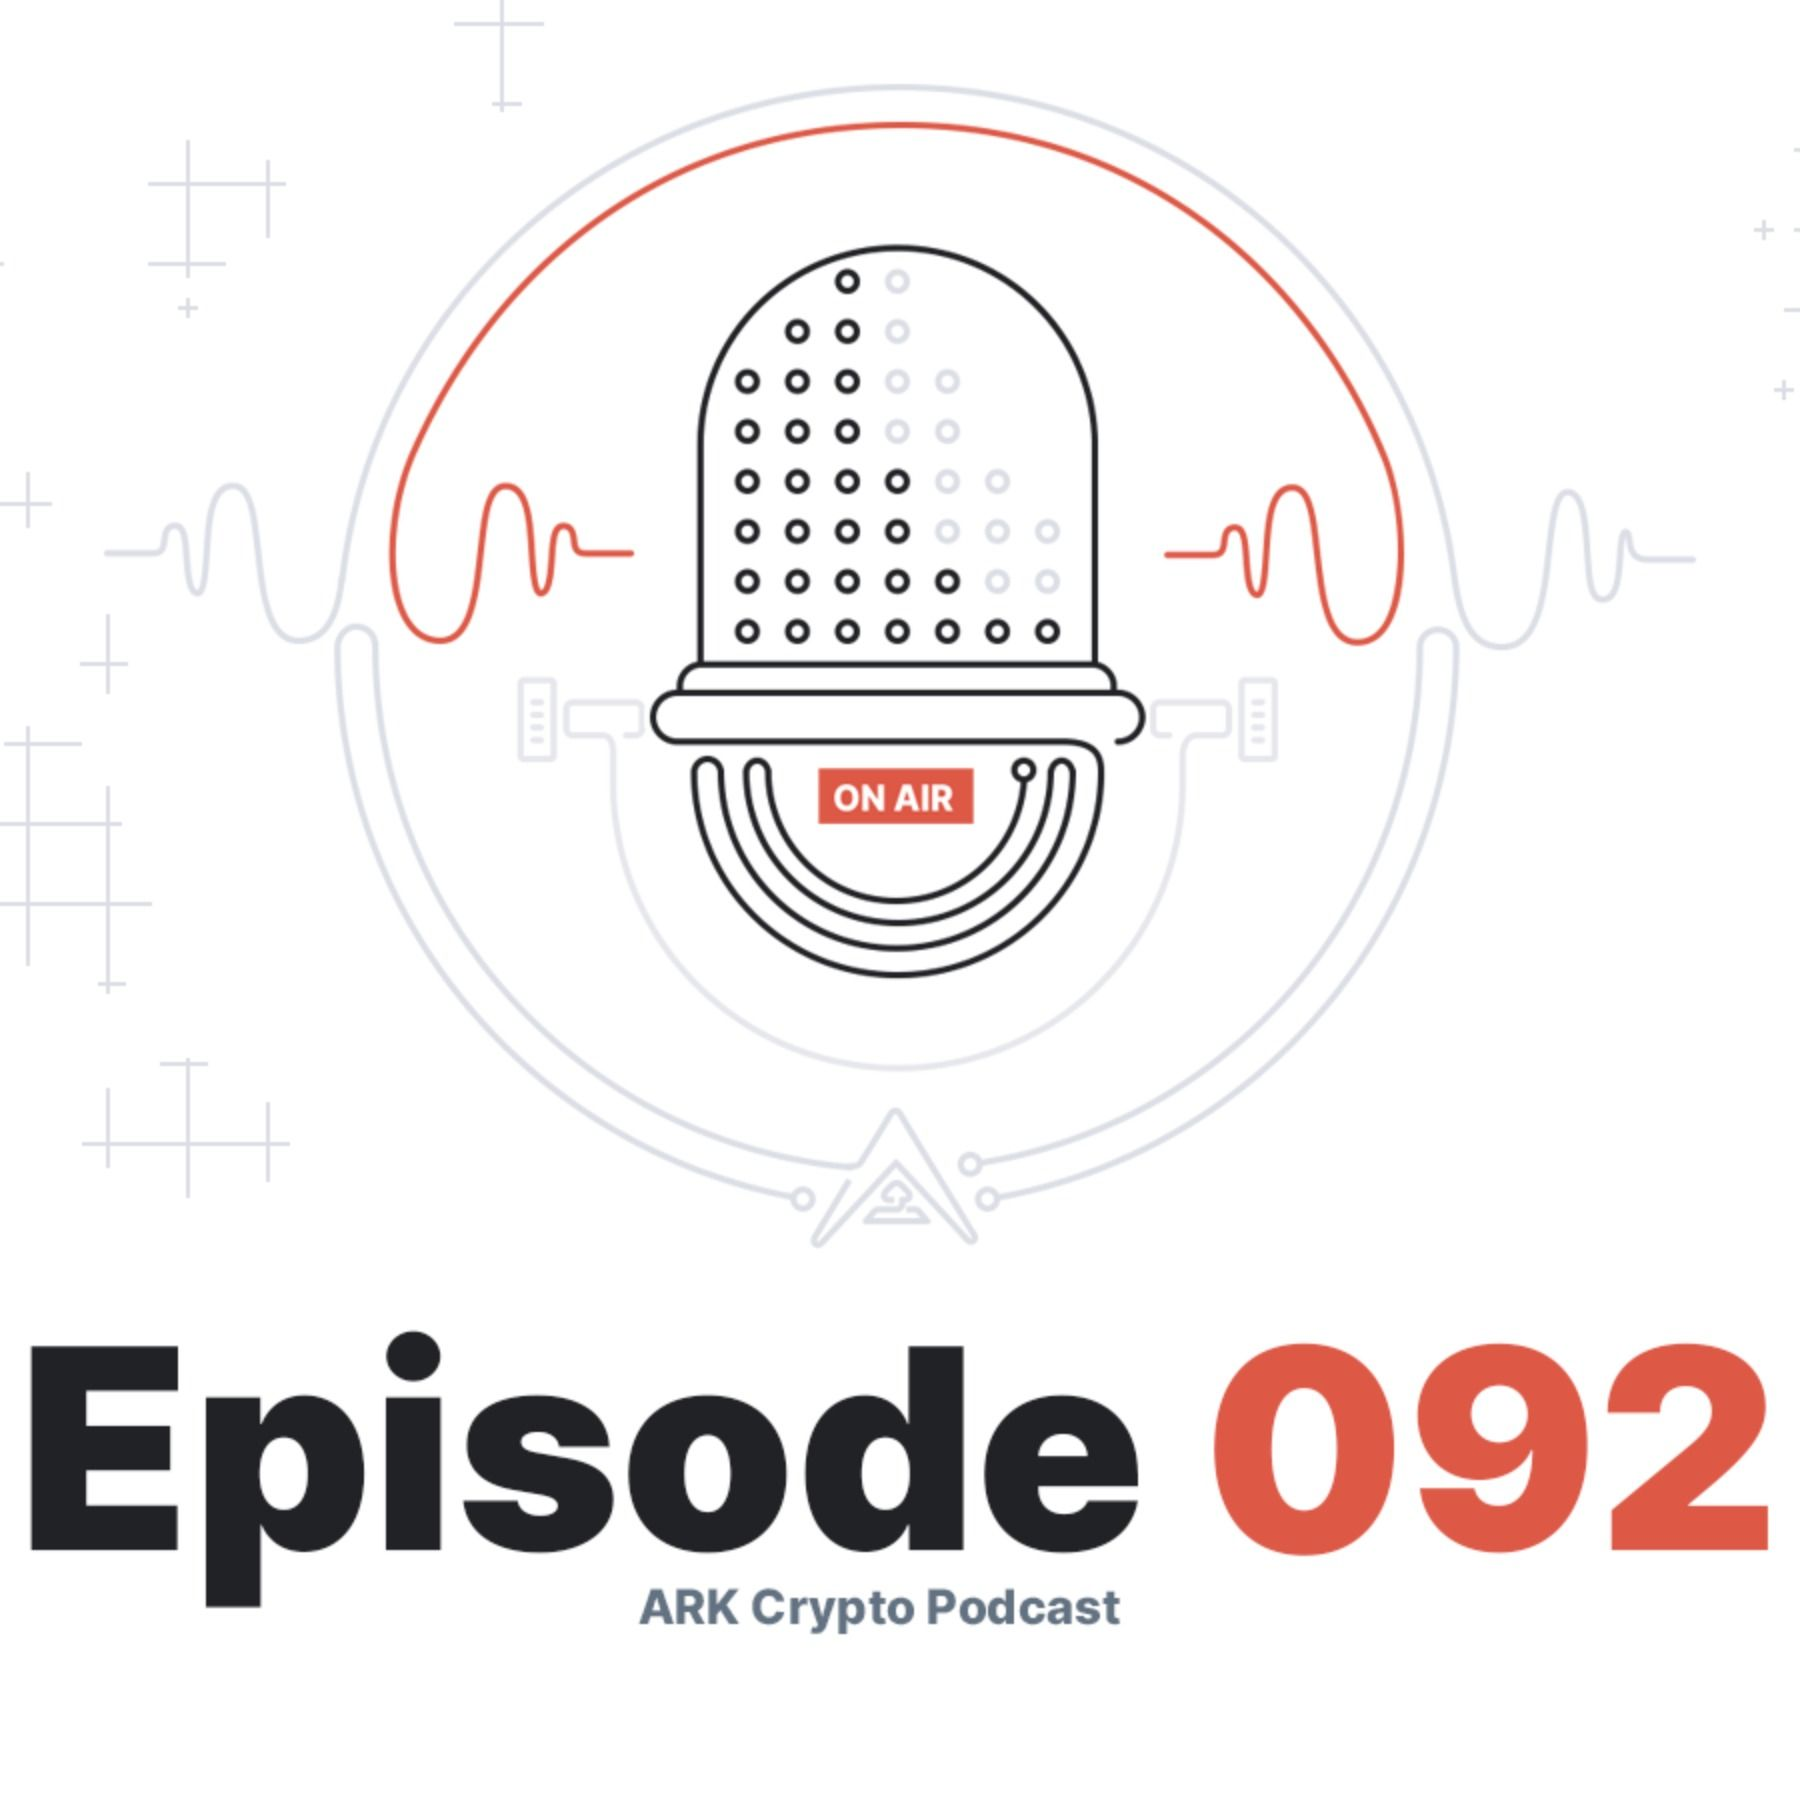 Discussing Deployer - The Simplest Way to Deploy a Blockchain Syndication - ARK Crypto Podcast #092